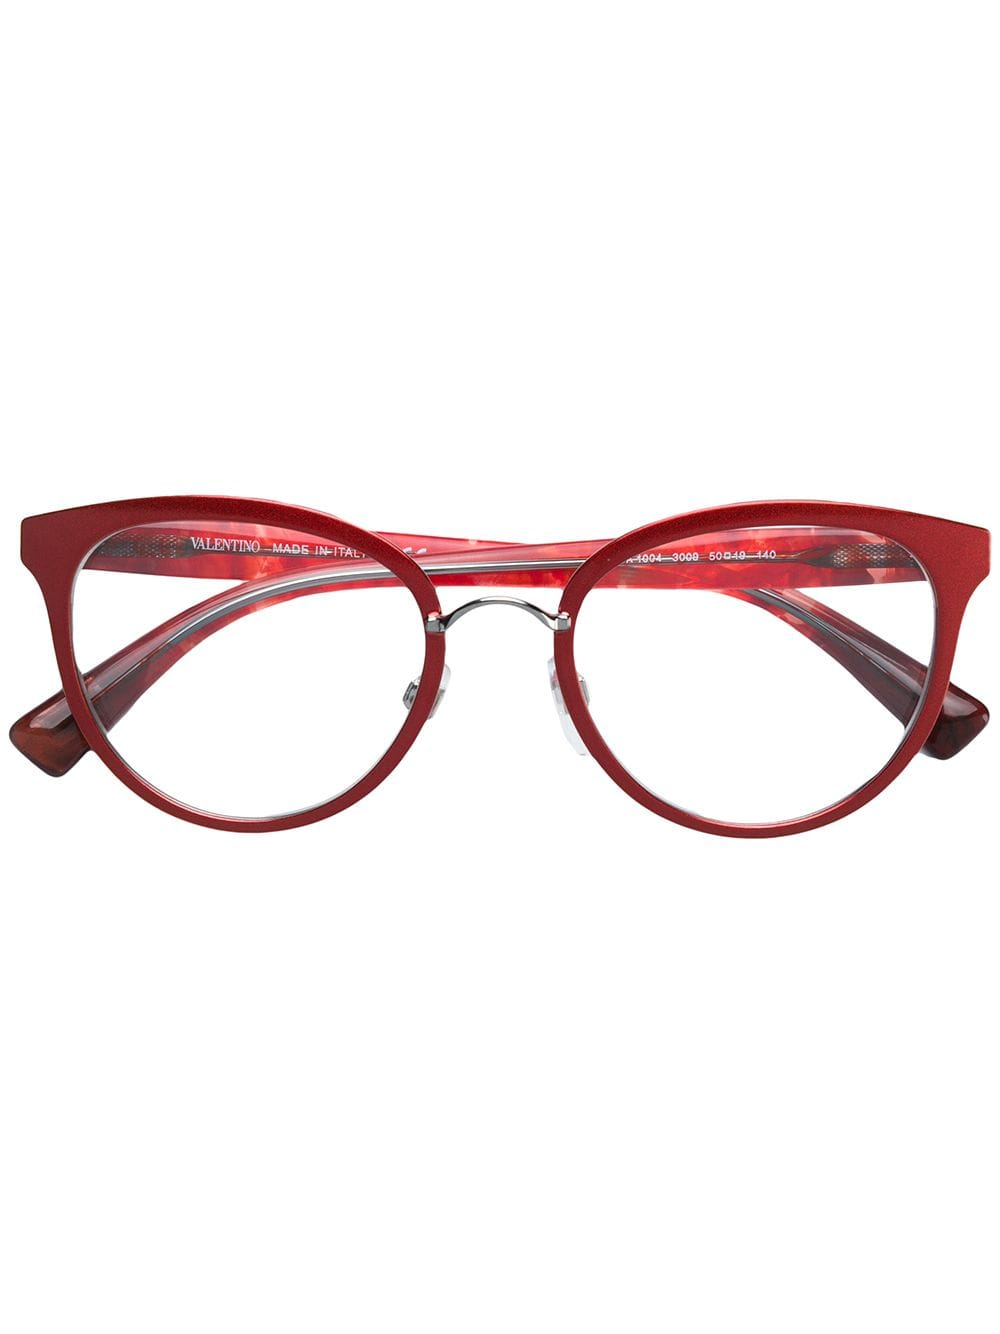 d402e549539 valentino-eyewear-round-frame-glasses-red-farfetch-com-photo.jpg 1536809531